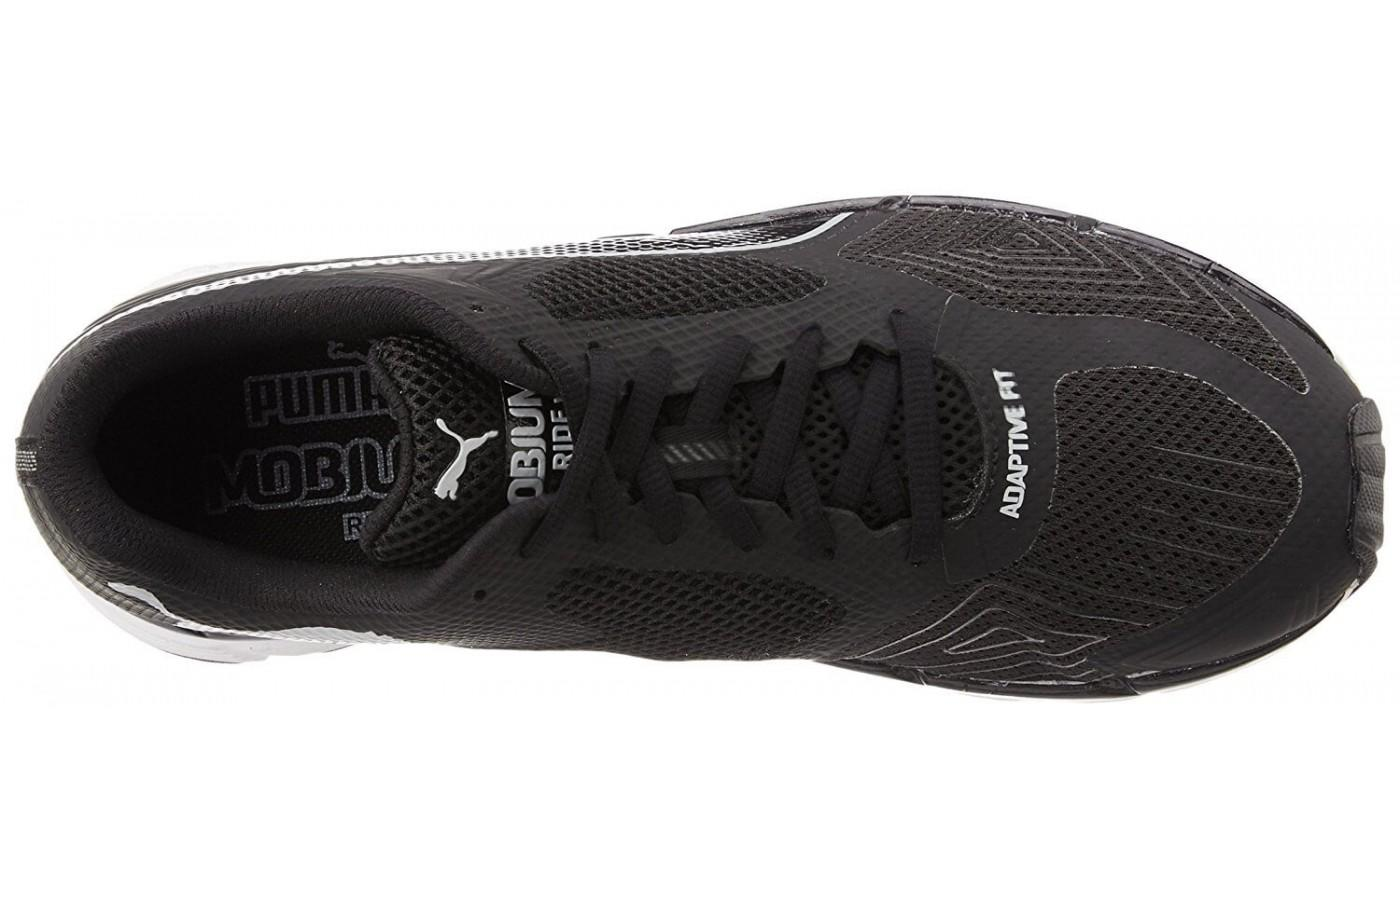 ... the Puma Mobium Ride v2 has a highly breathable dual-layer upper mesh  ... c2a761a69